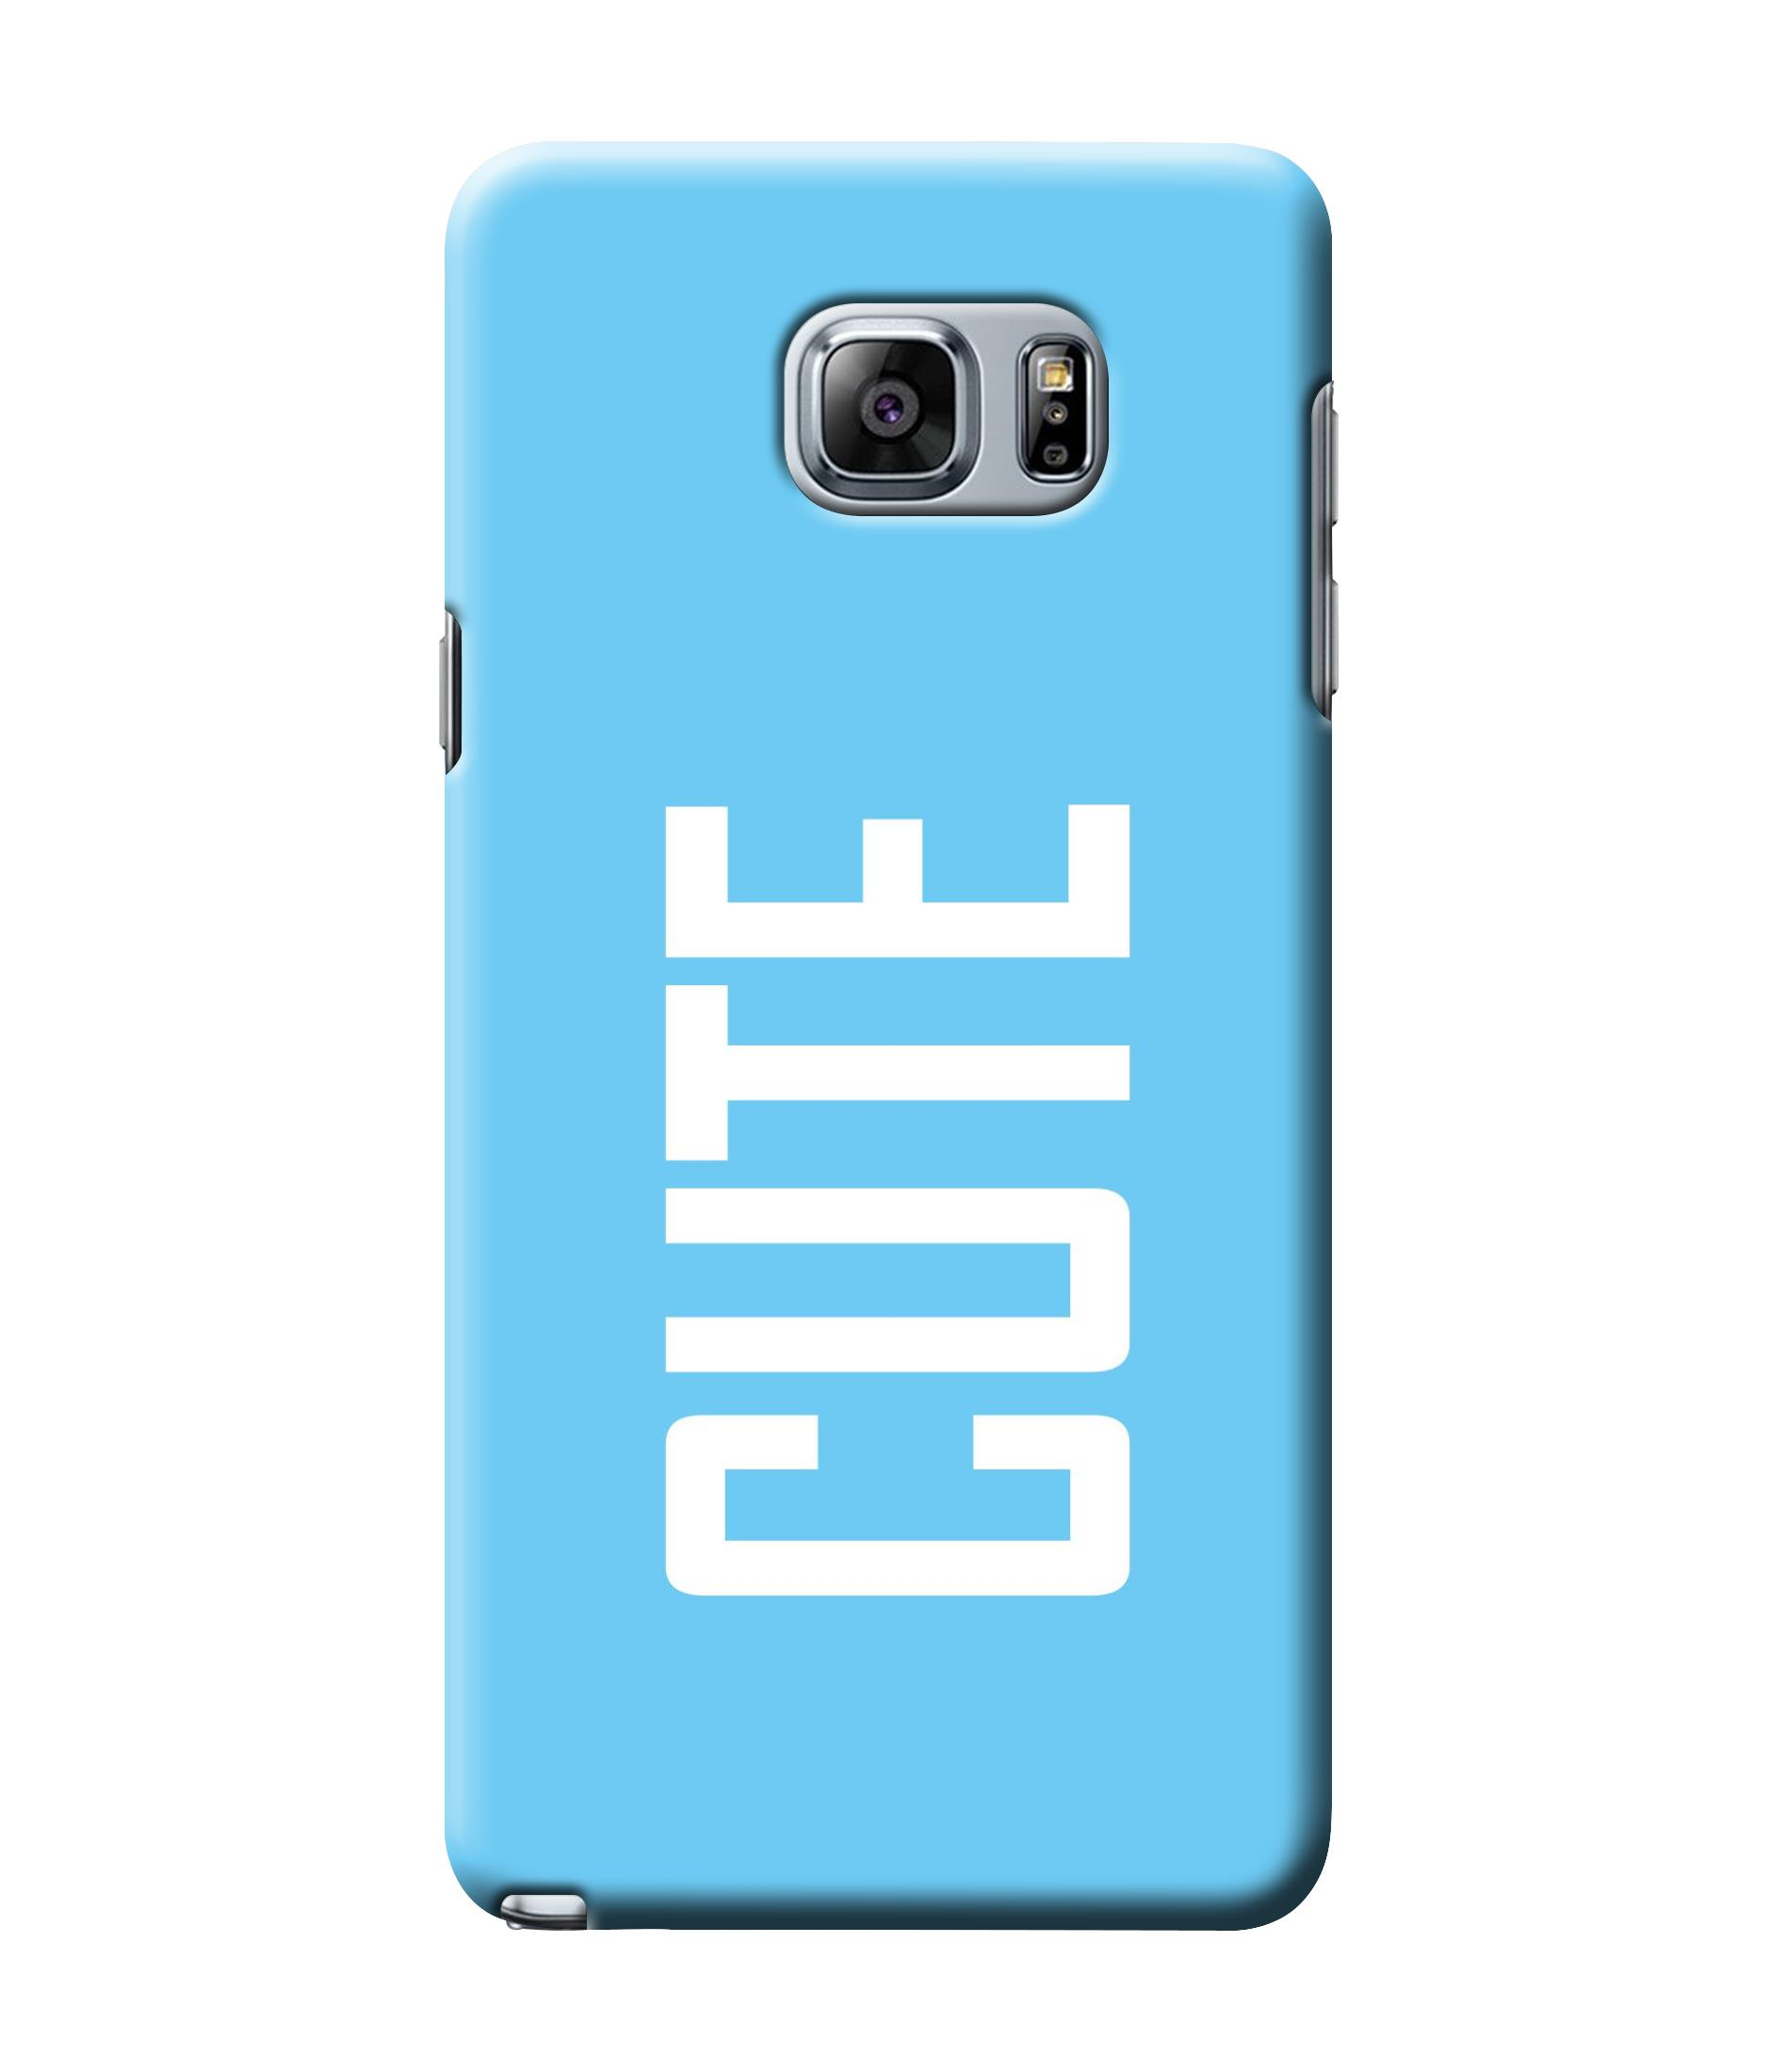 caseophile2 Samsung Galaxy Note 5 Cute Blue Mobile Case